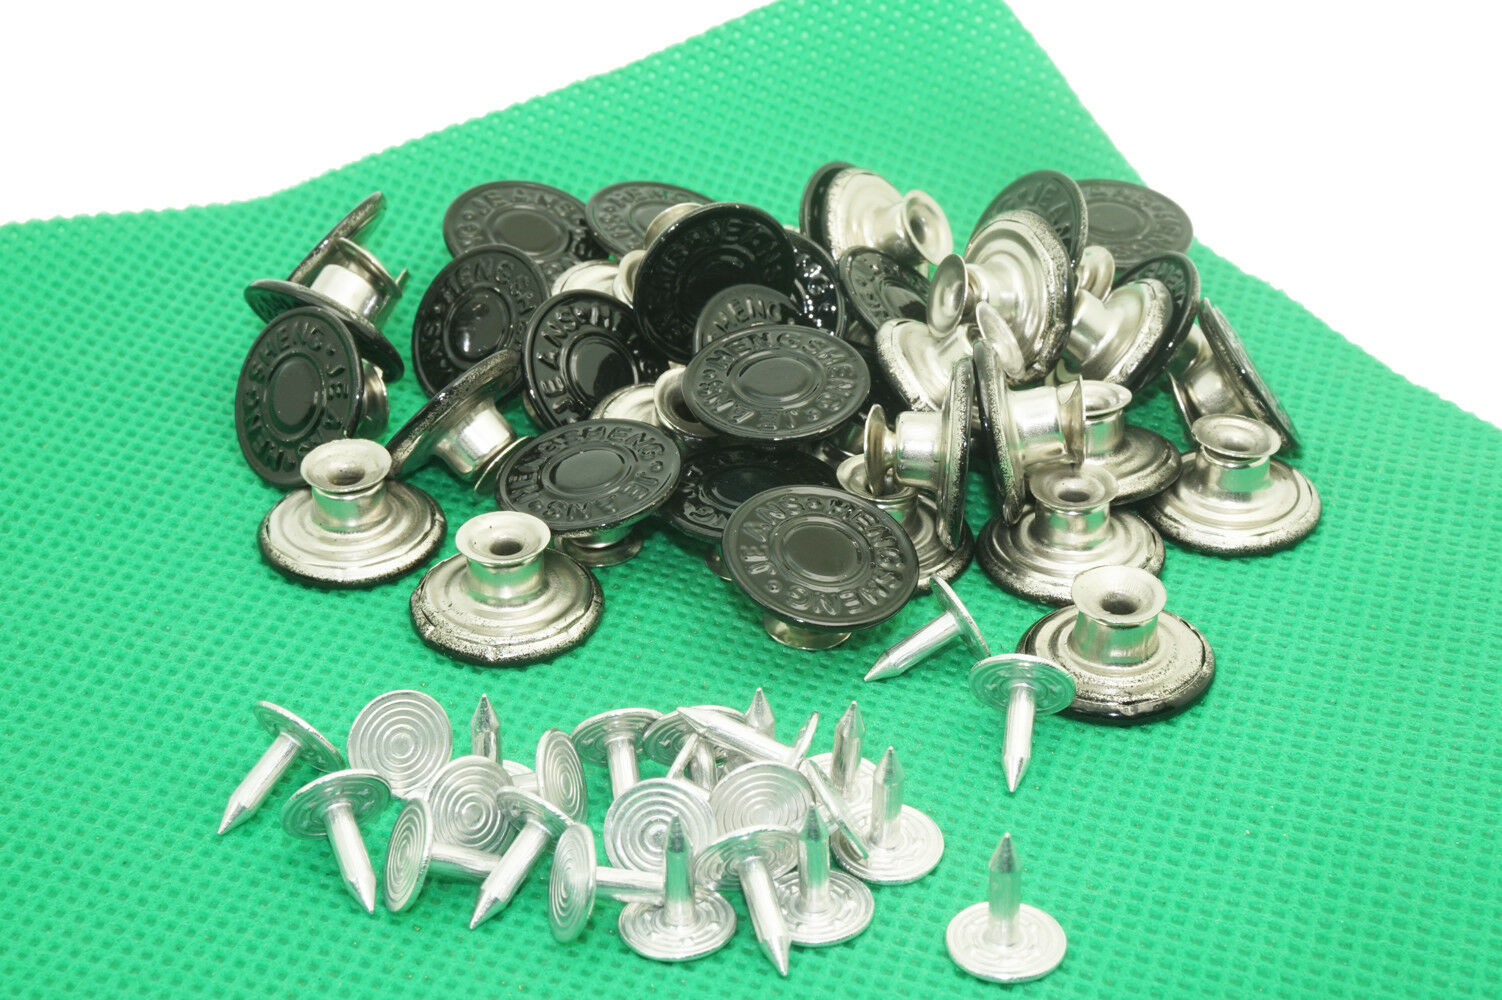 20 Mens Bachelor Buttons for Suspenders Instant Suspender Buttons - no sewing